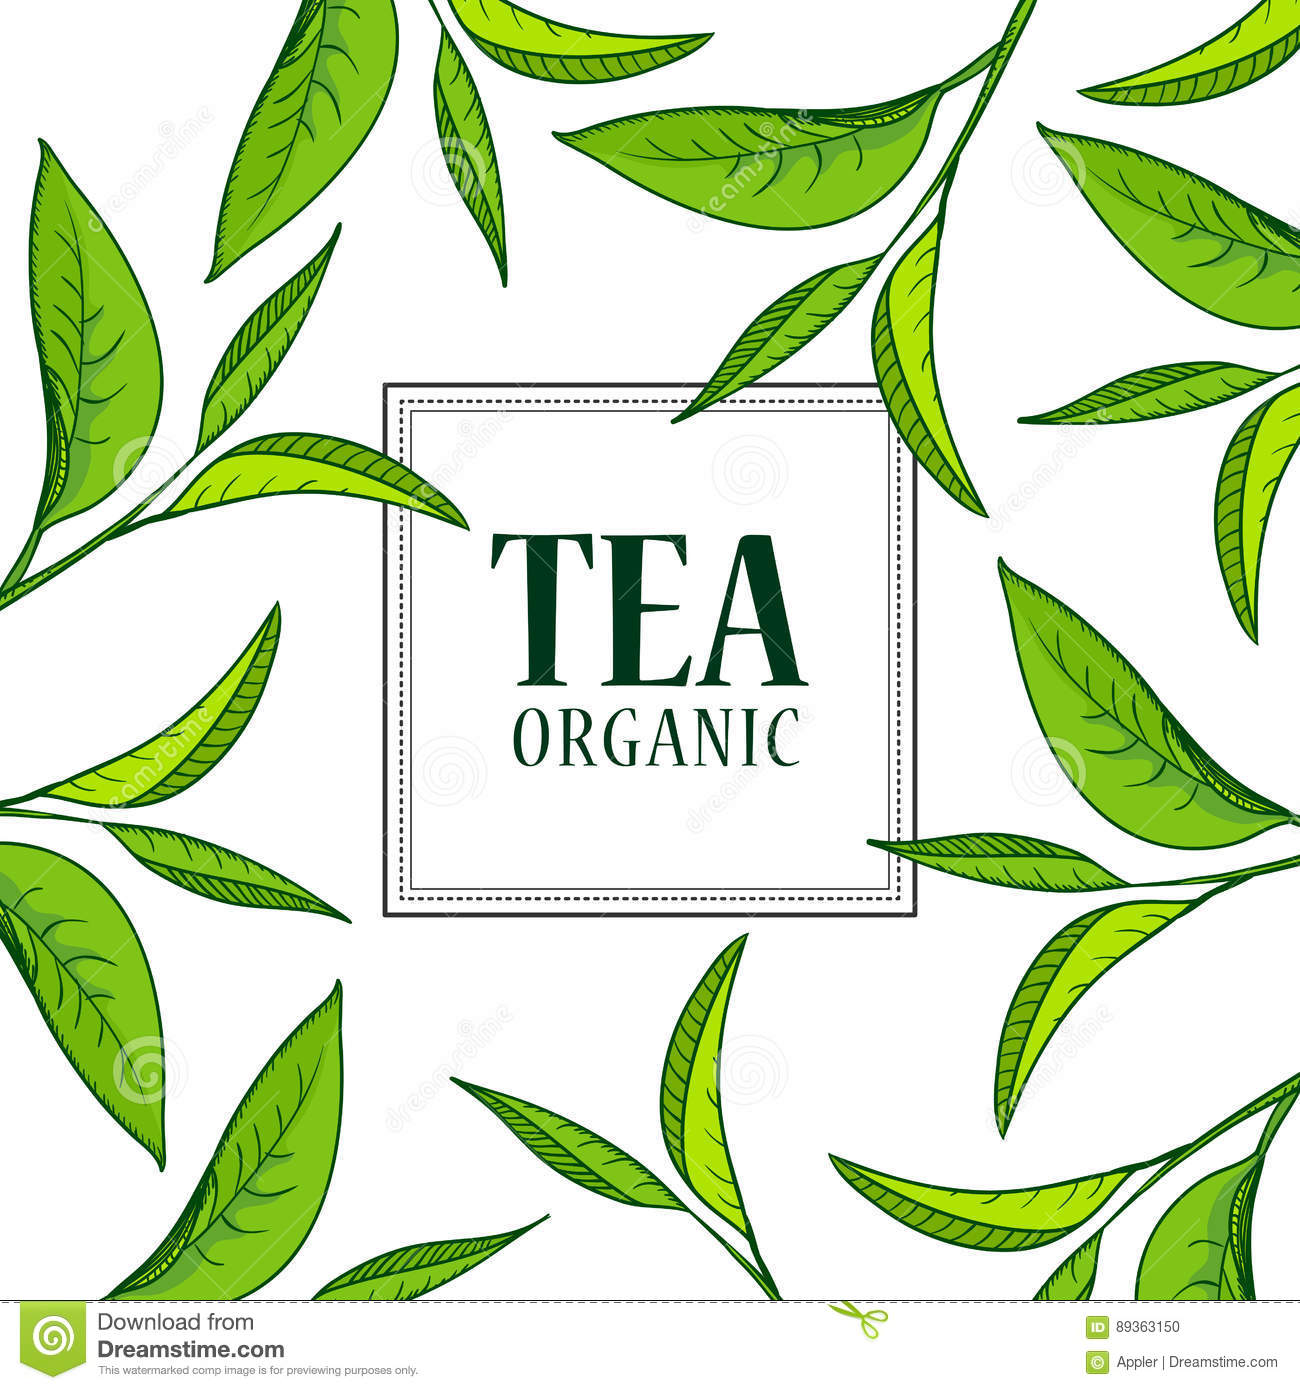 Organic tea frame stock vector. Illustration of leaf - 89363150